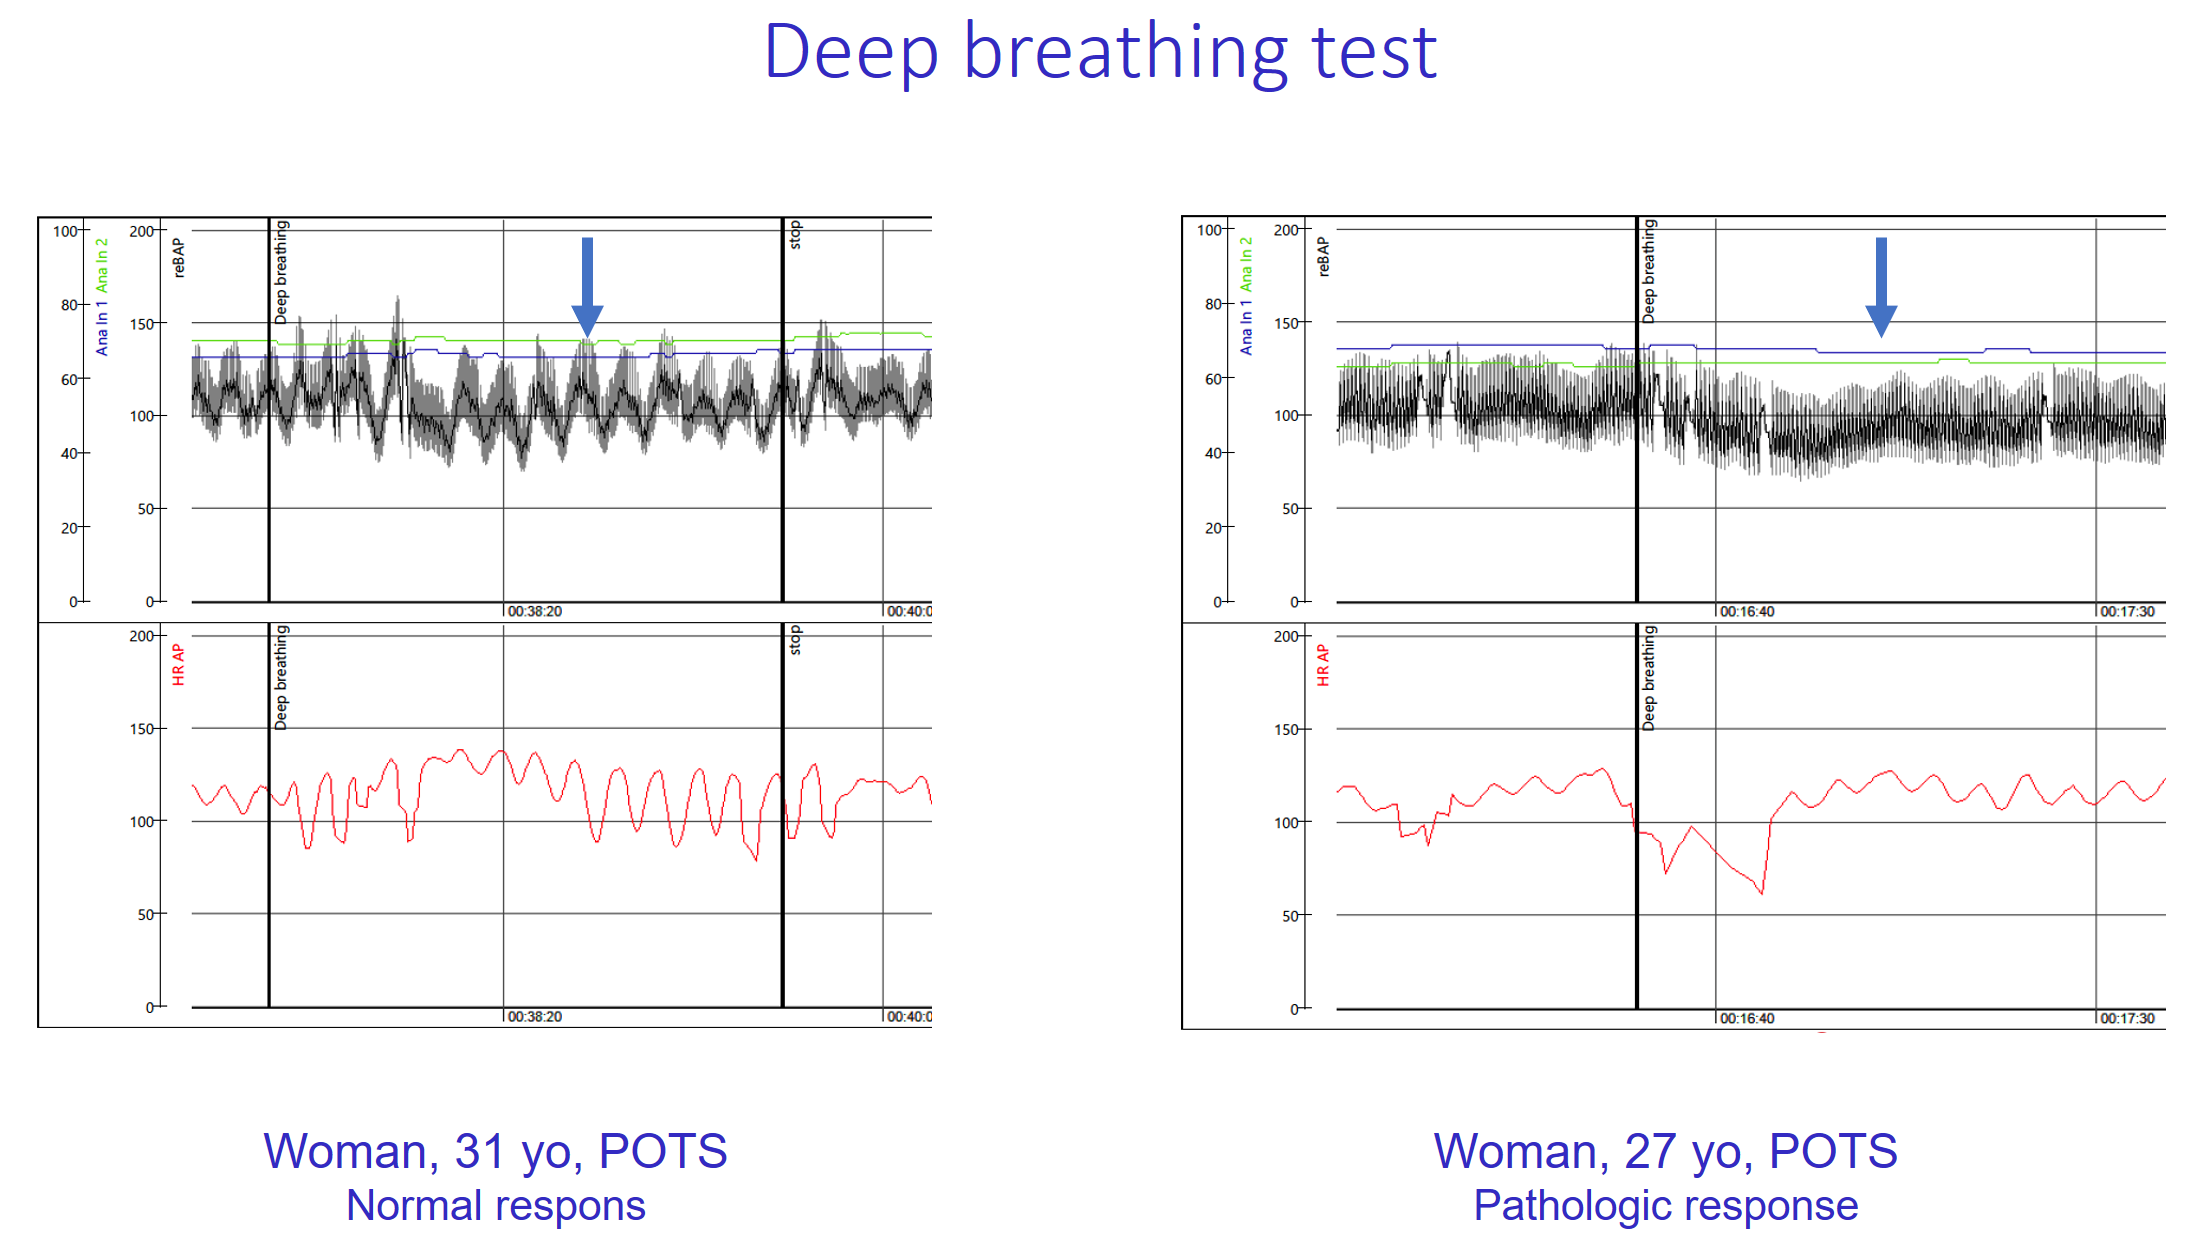 Examples of beat-to-beat blood pressure and ECG monitoring during a deep breathing test in 2 women with POTS.